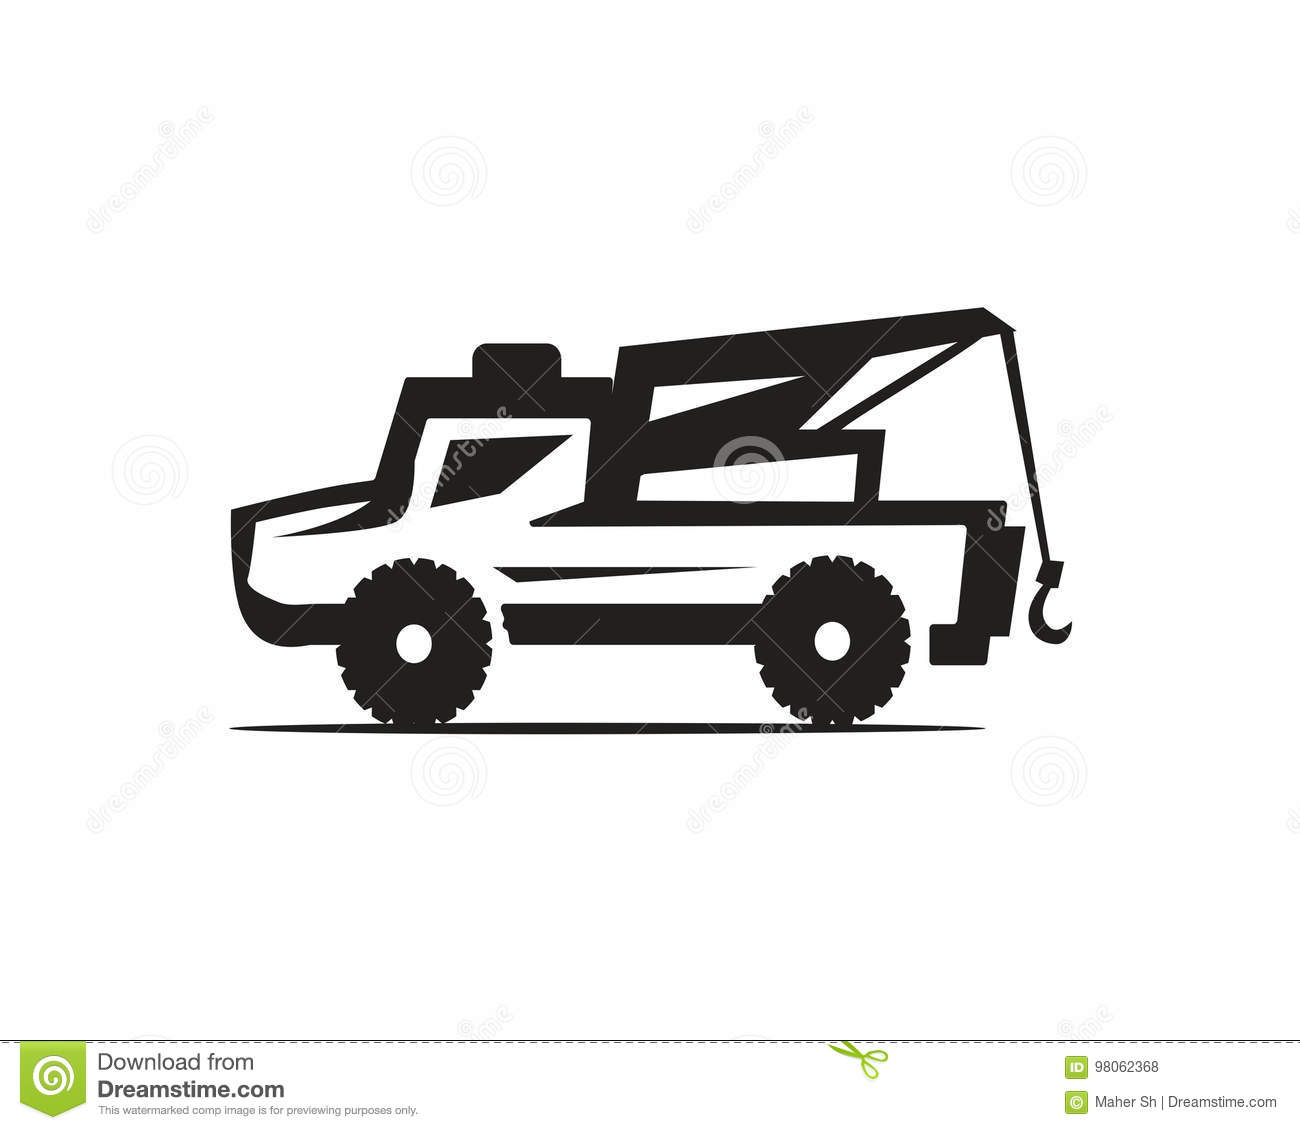 Tow Truck Icon Stock Vector Illustration Of Symbol Dark 98062368